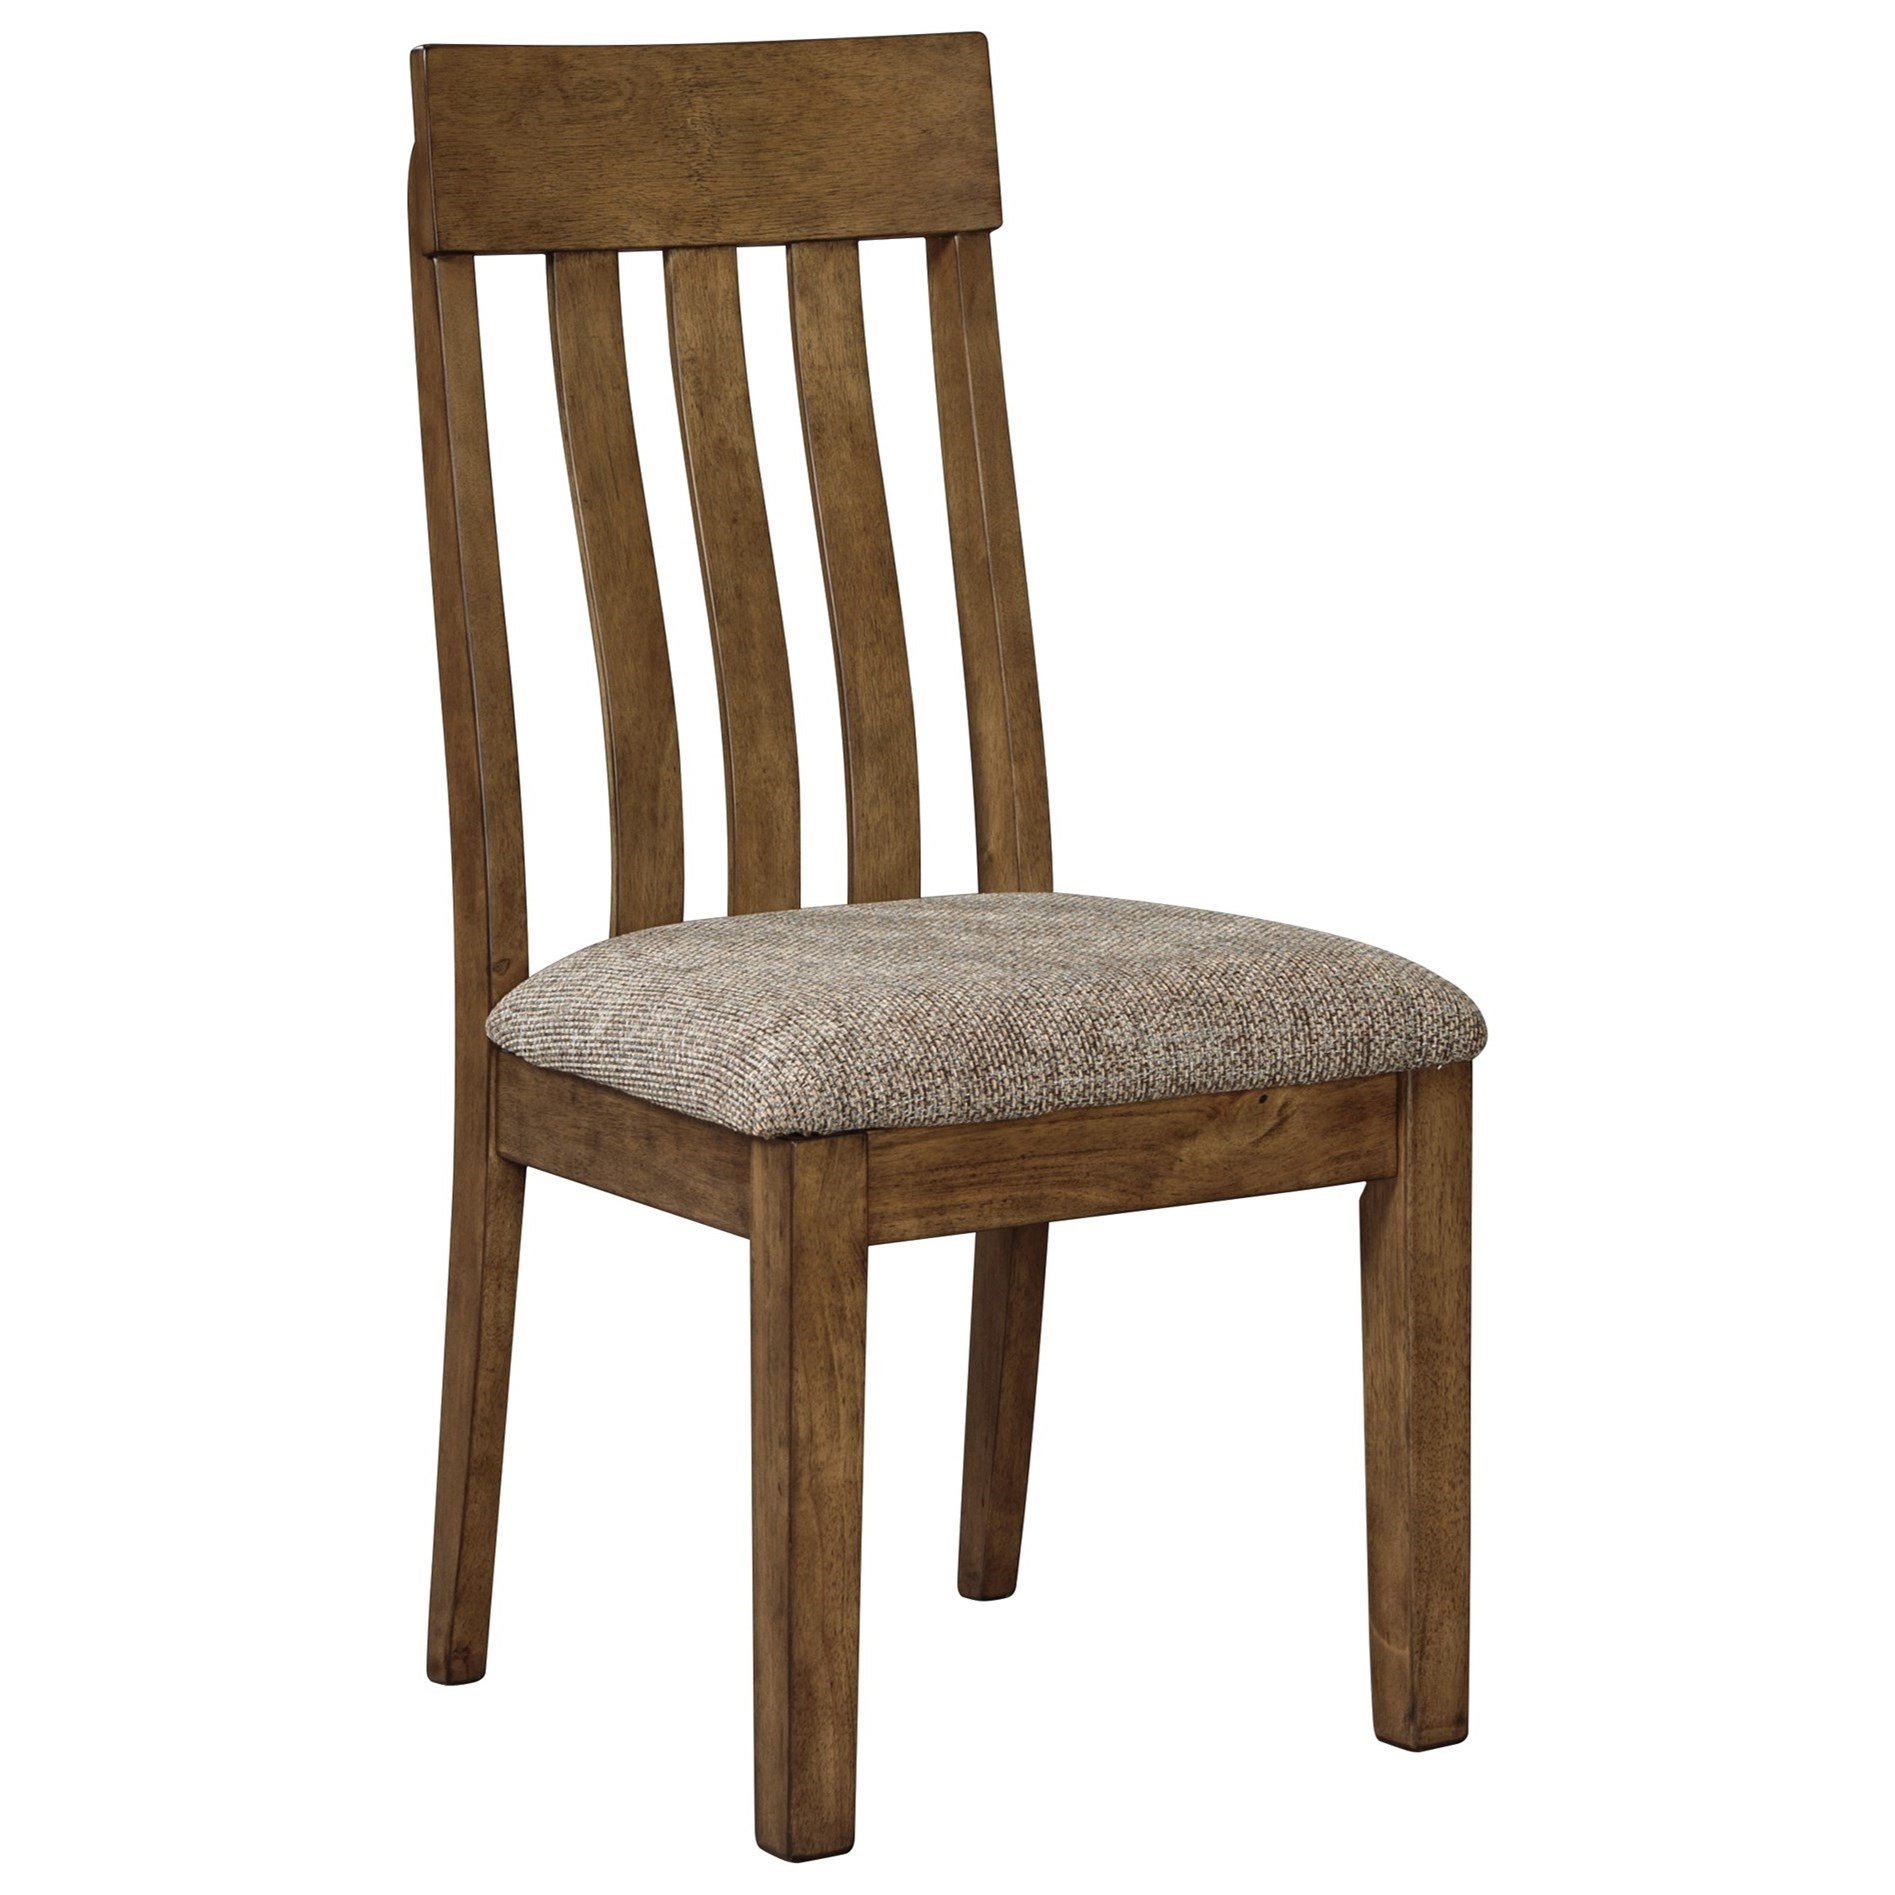 Dining Side Chairs Benchcraft Flaybern D595 01 Dining Upholstered Slat Back